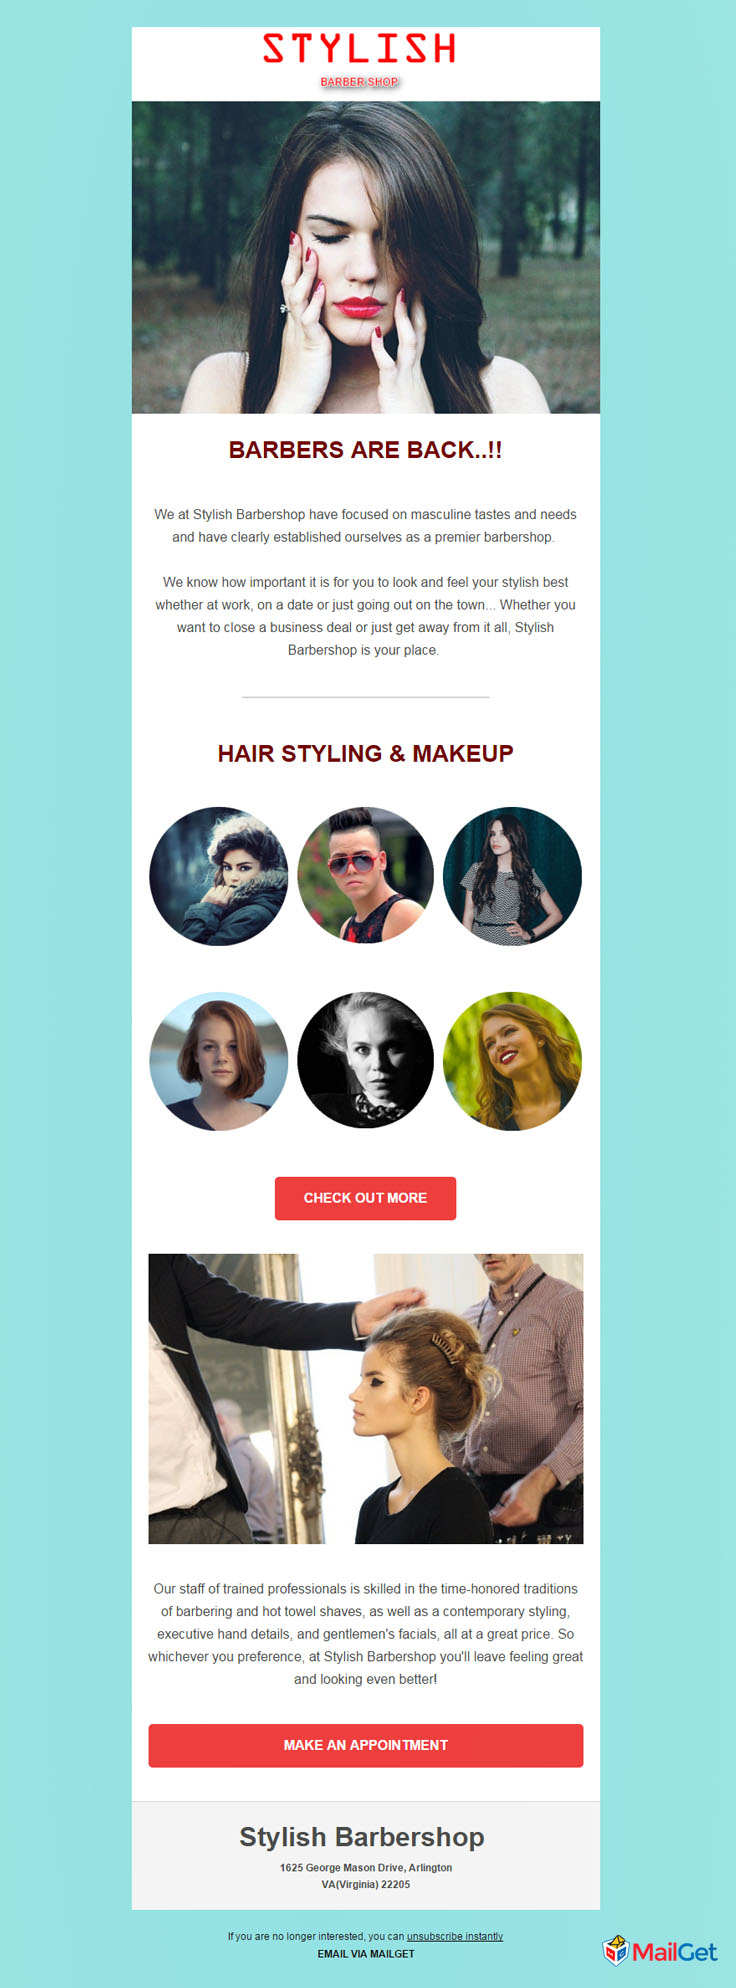 free-hair-salon-email-newsletter-templates-4-MailGet